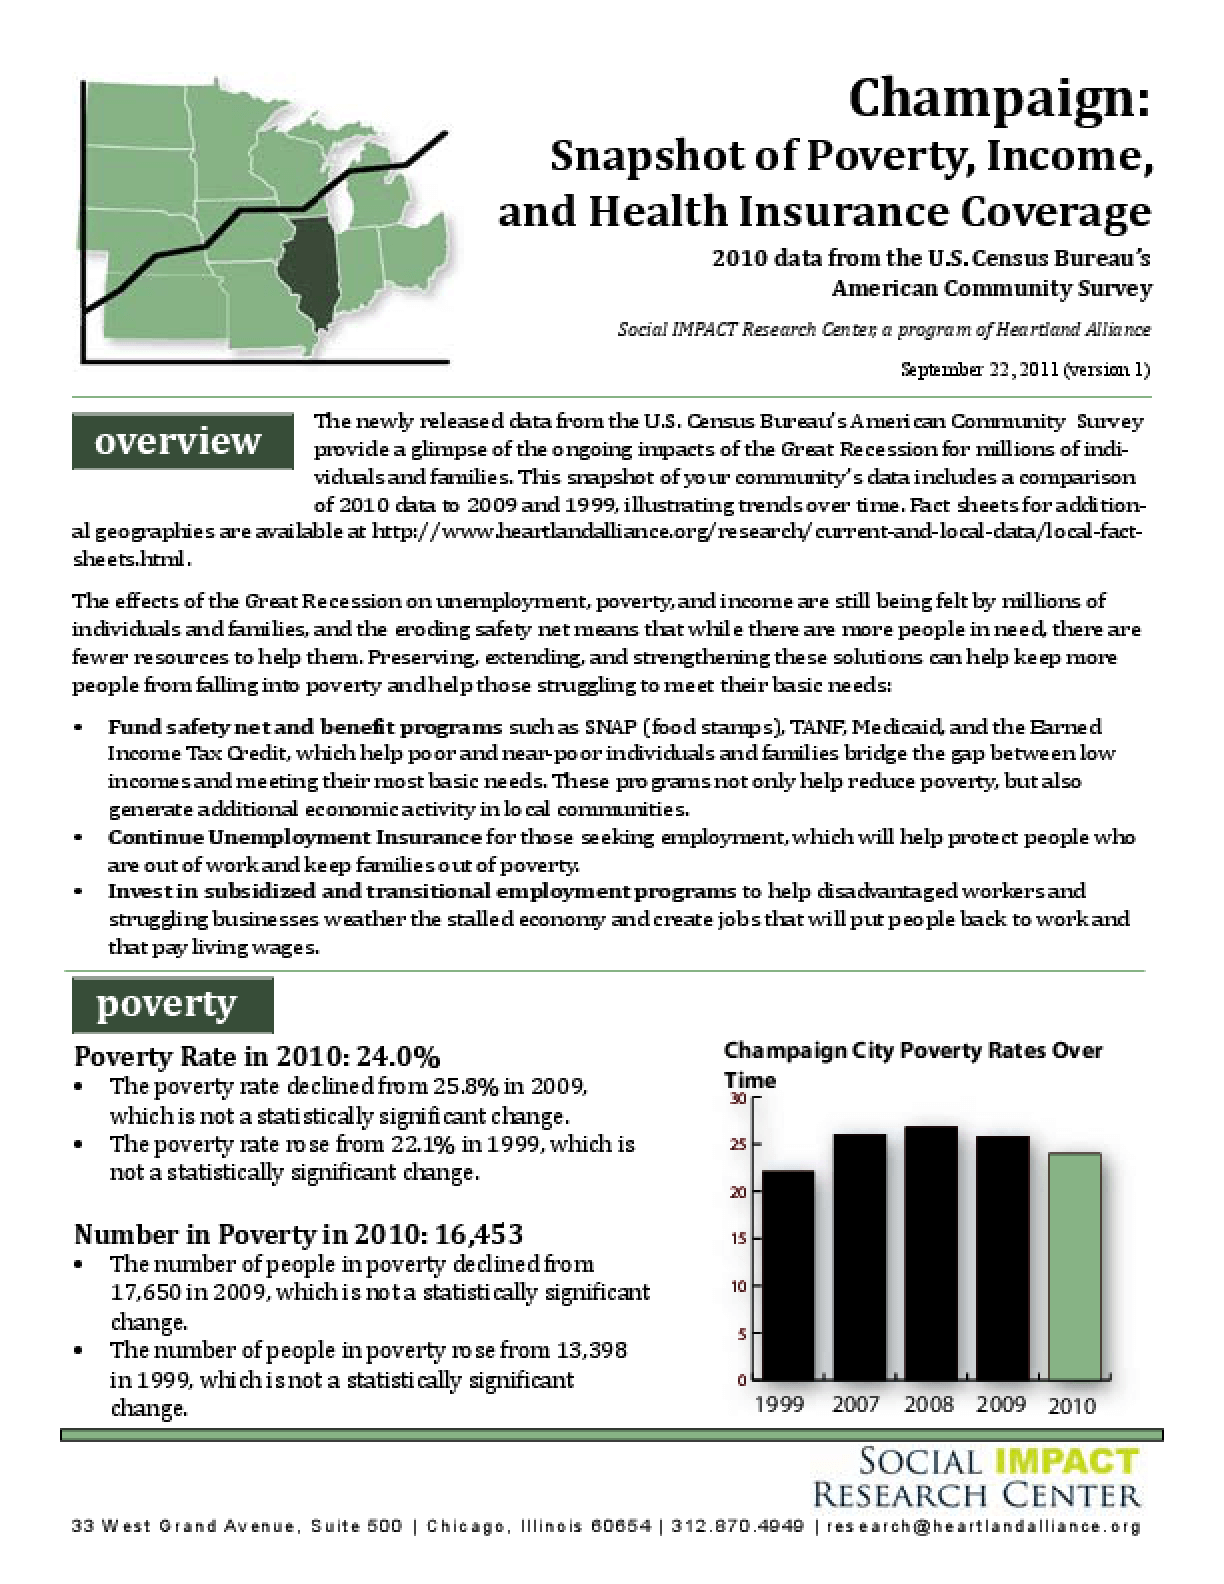 Champaign City: Snapshot of Poverty, Income, and Health Insurance Coverage